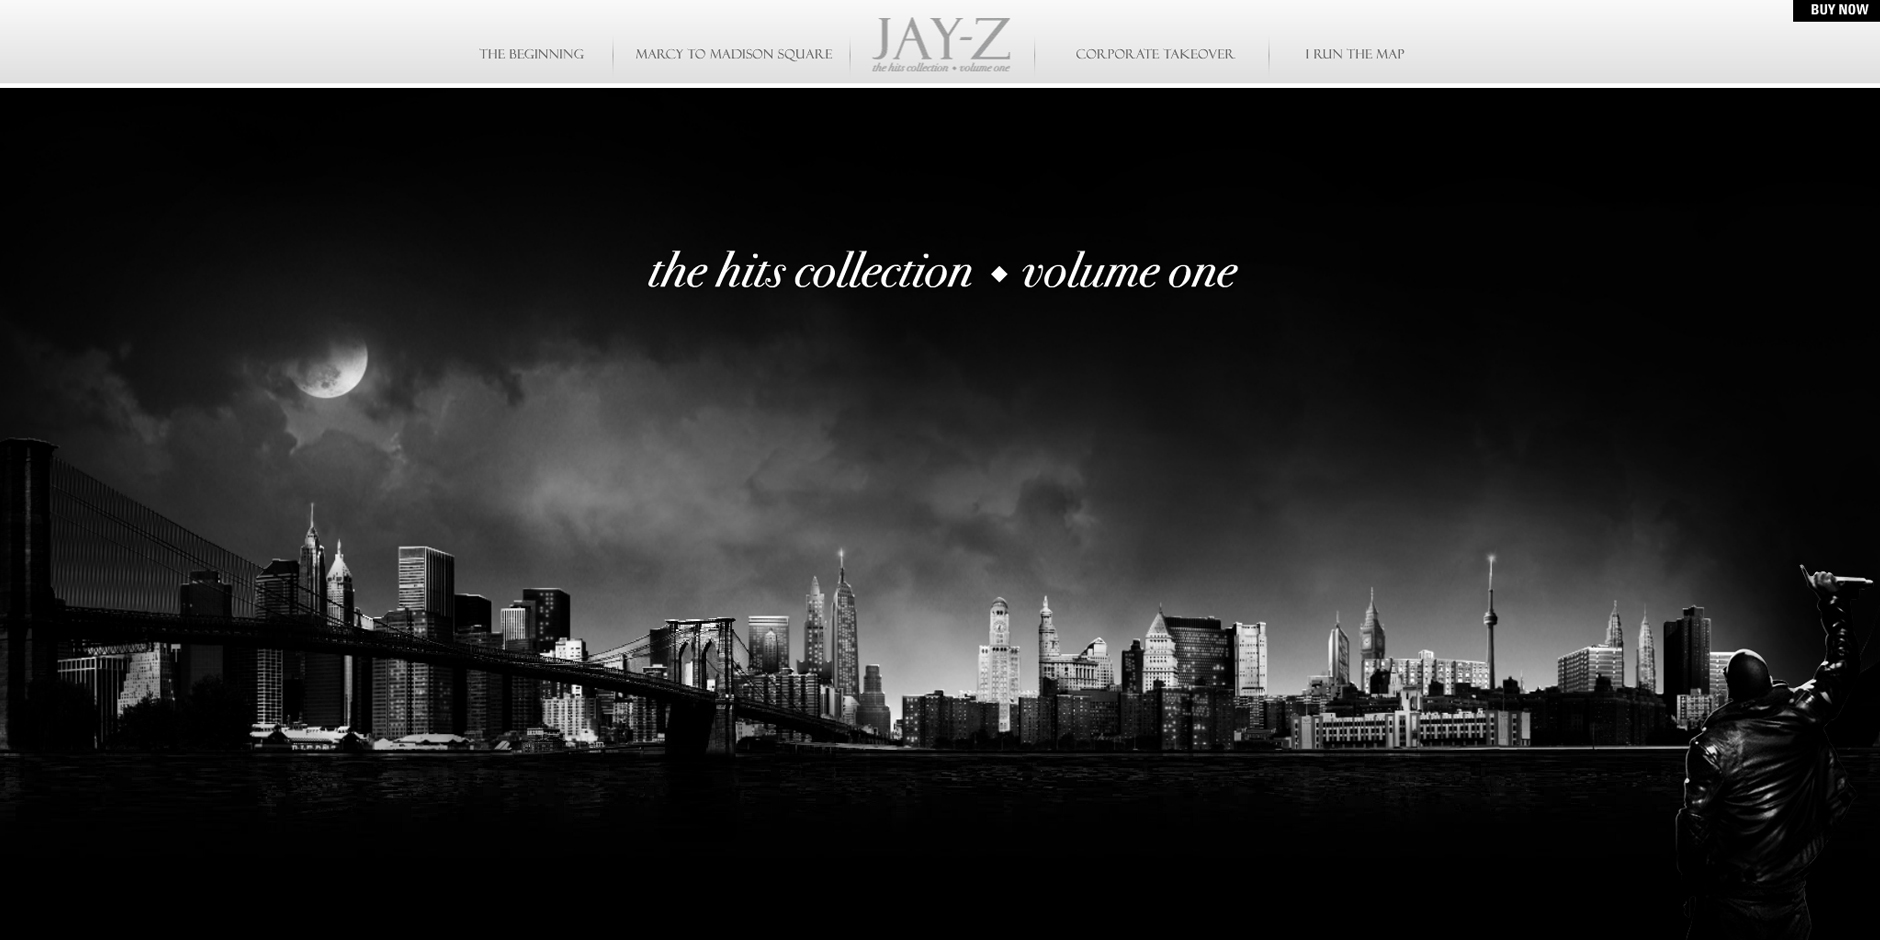 Honoree - Jay-Z Hits Collection Vol. 1